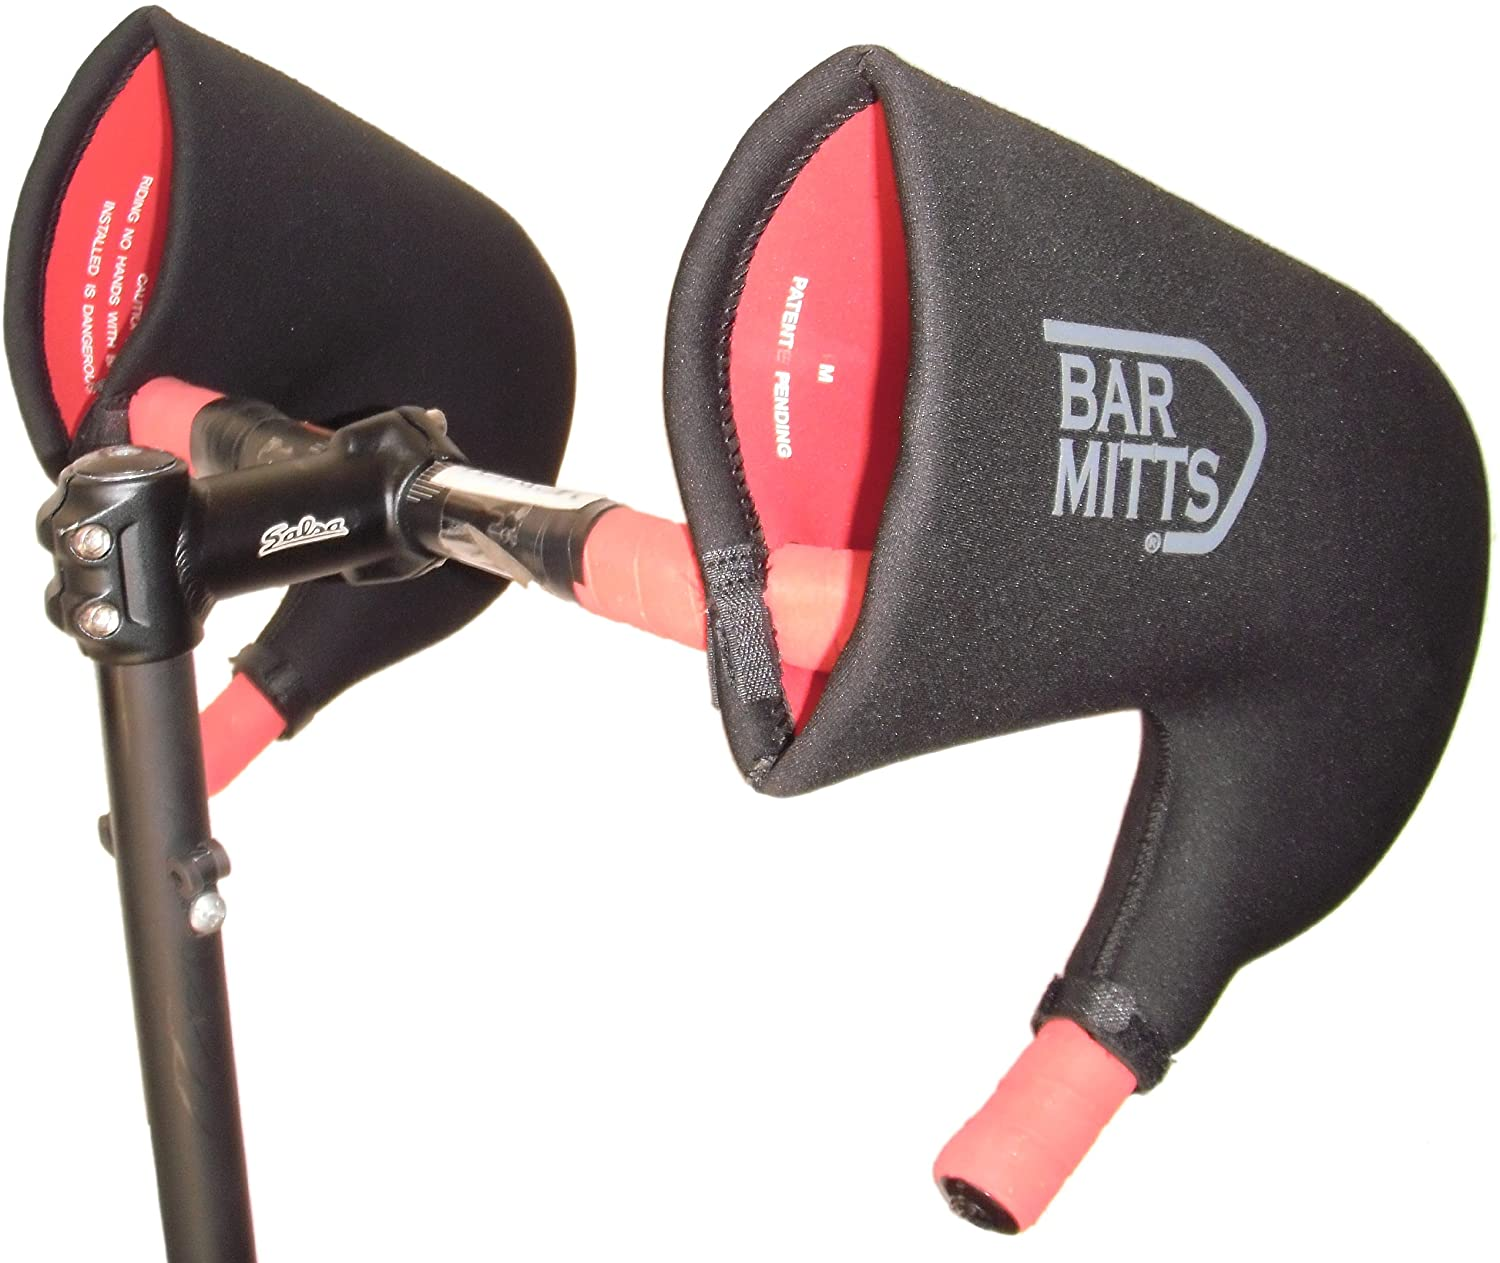 fits Campy//SRAM//Shimano Shifters with Internally Routed Cables Bar Mitts Cold Weather Road Bicycle Handlebar Mittens